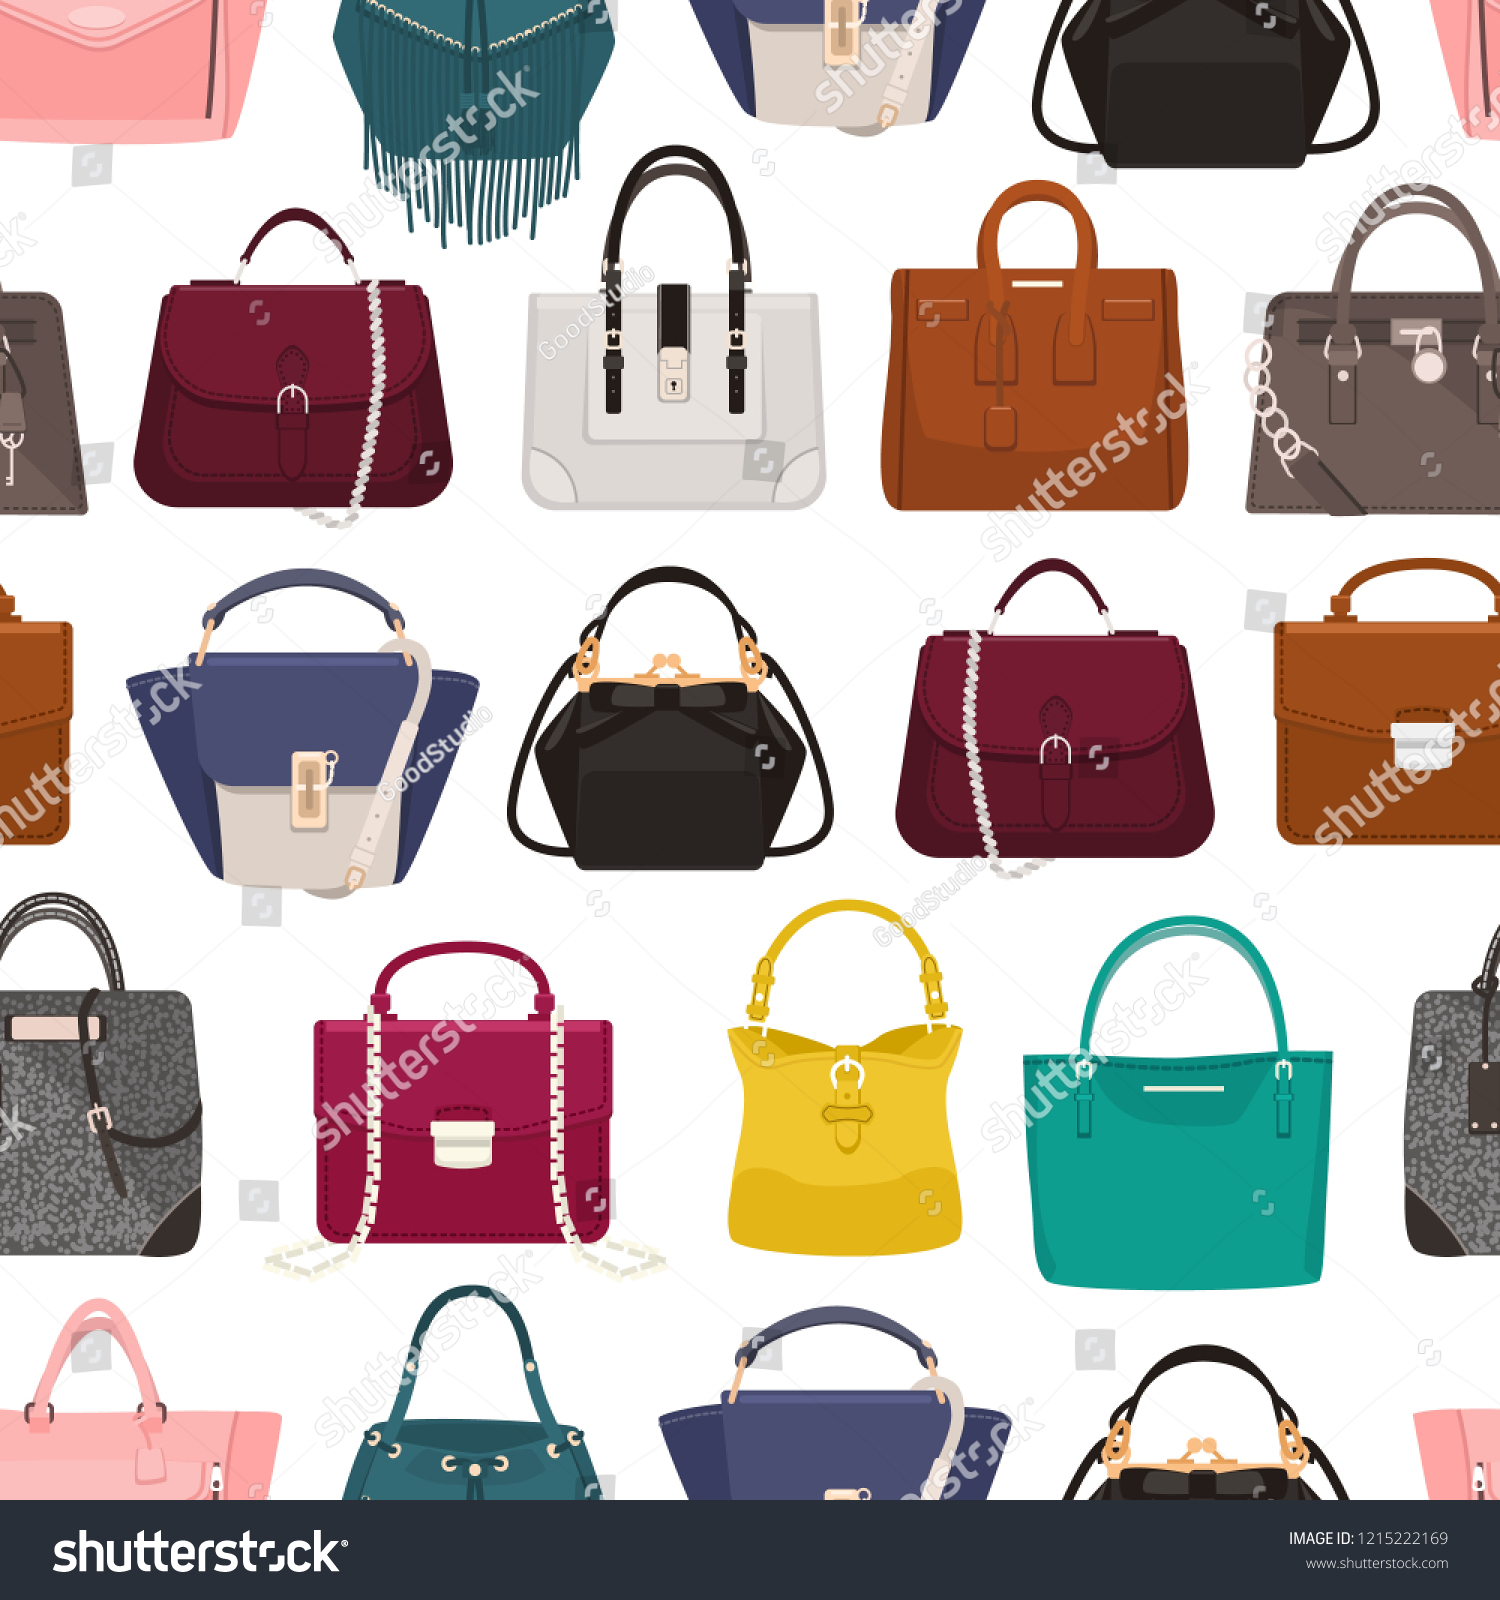 978cdd5a67 ... stock vector images ID  1215222169. Colorful seamless pattern with  elegant women s bags or handbags of various types on white background.